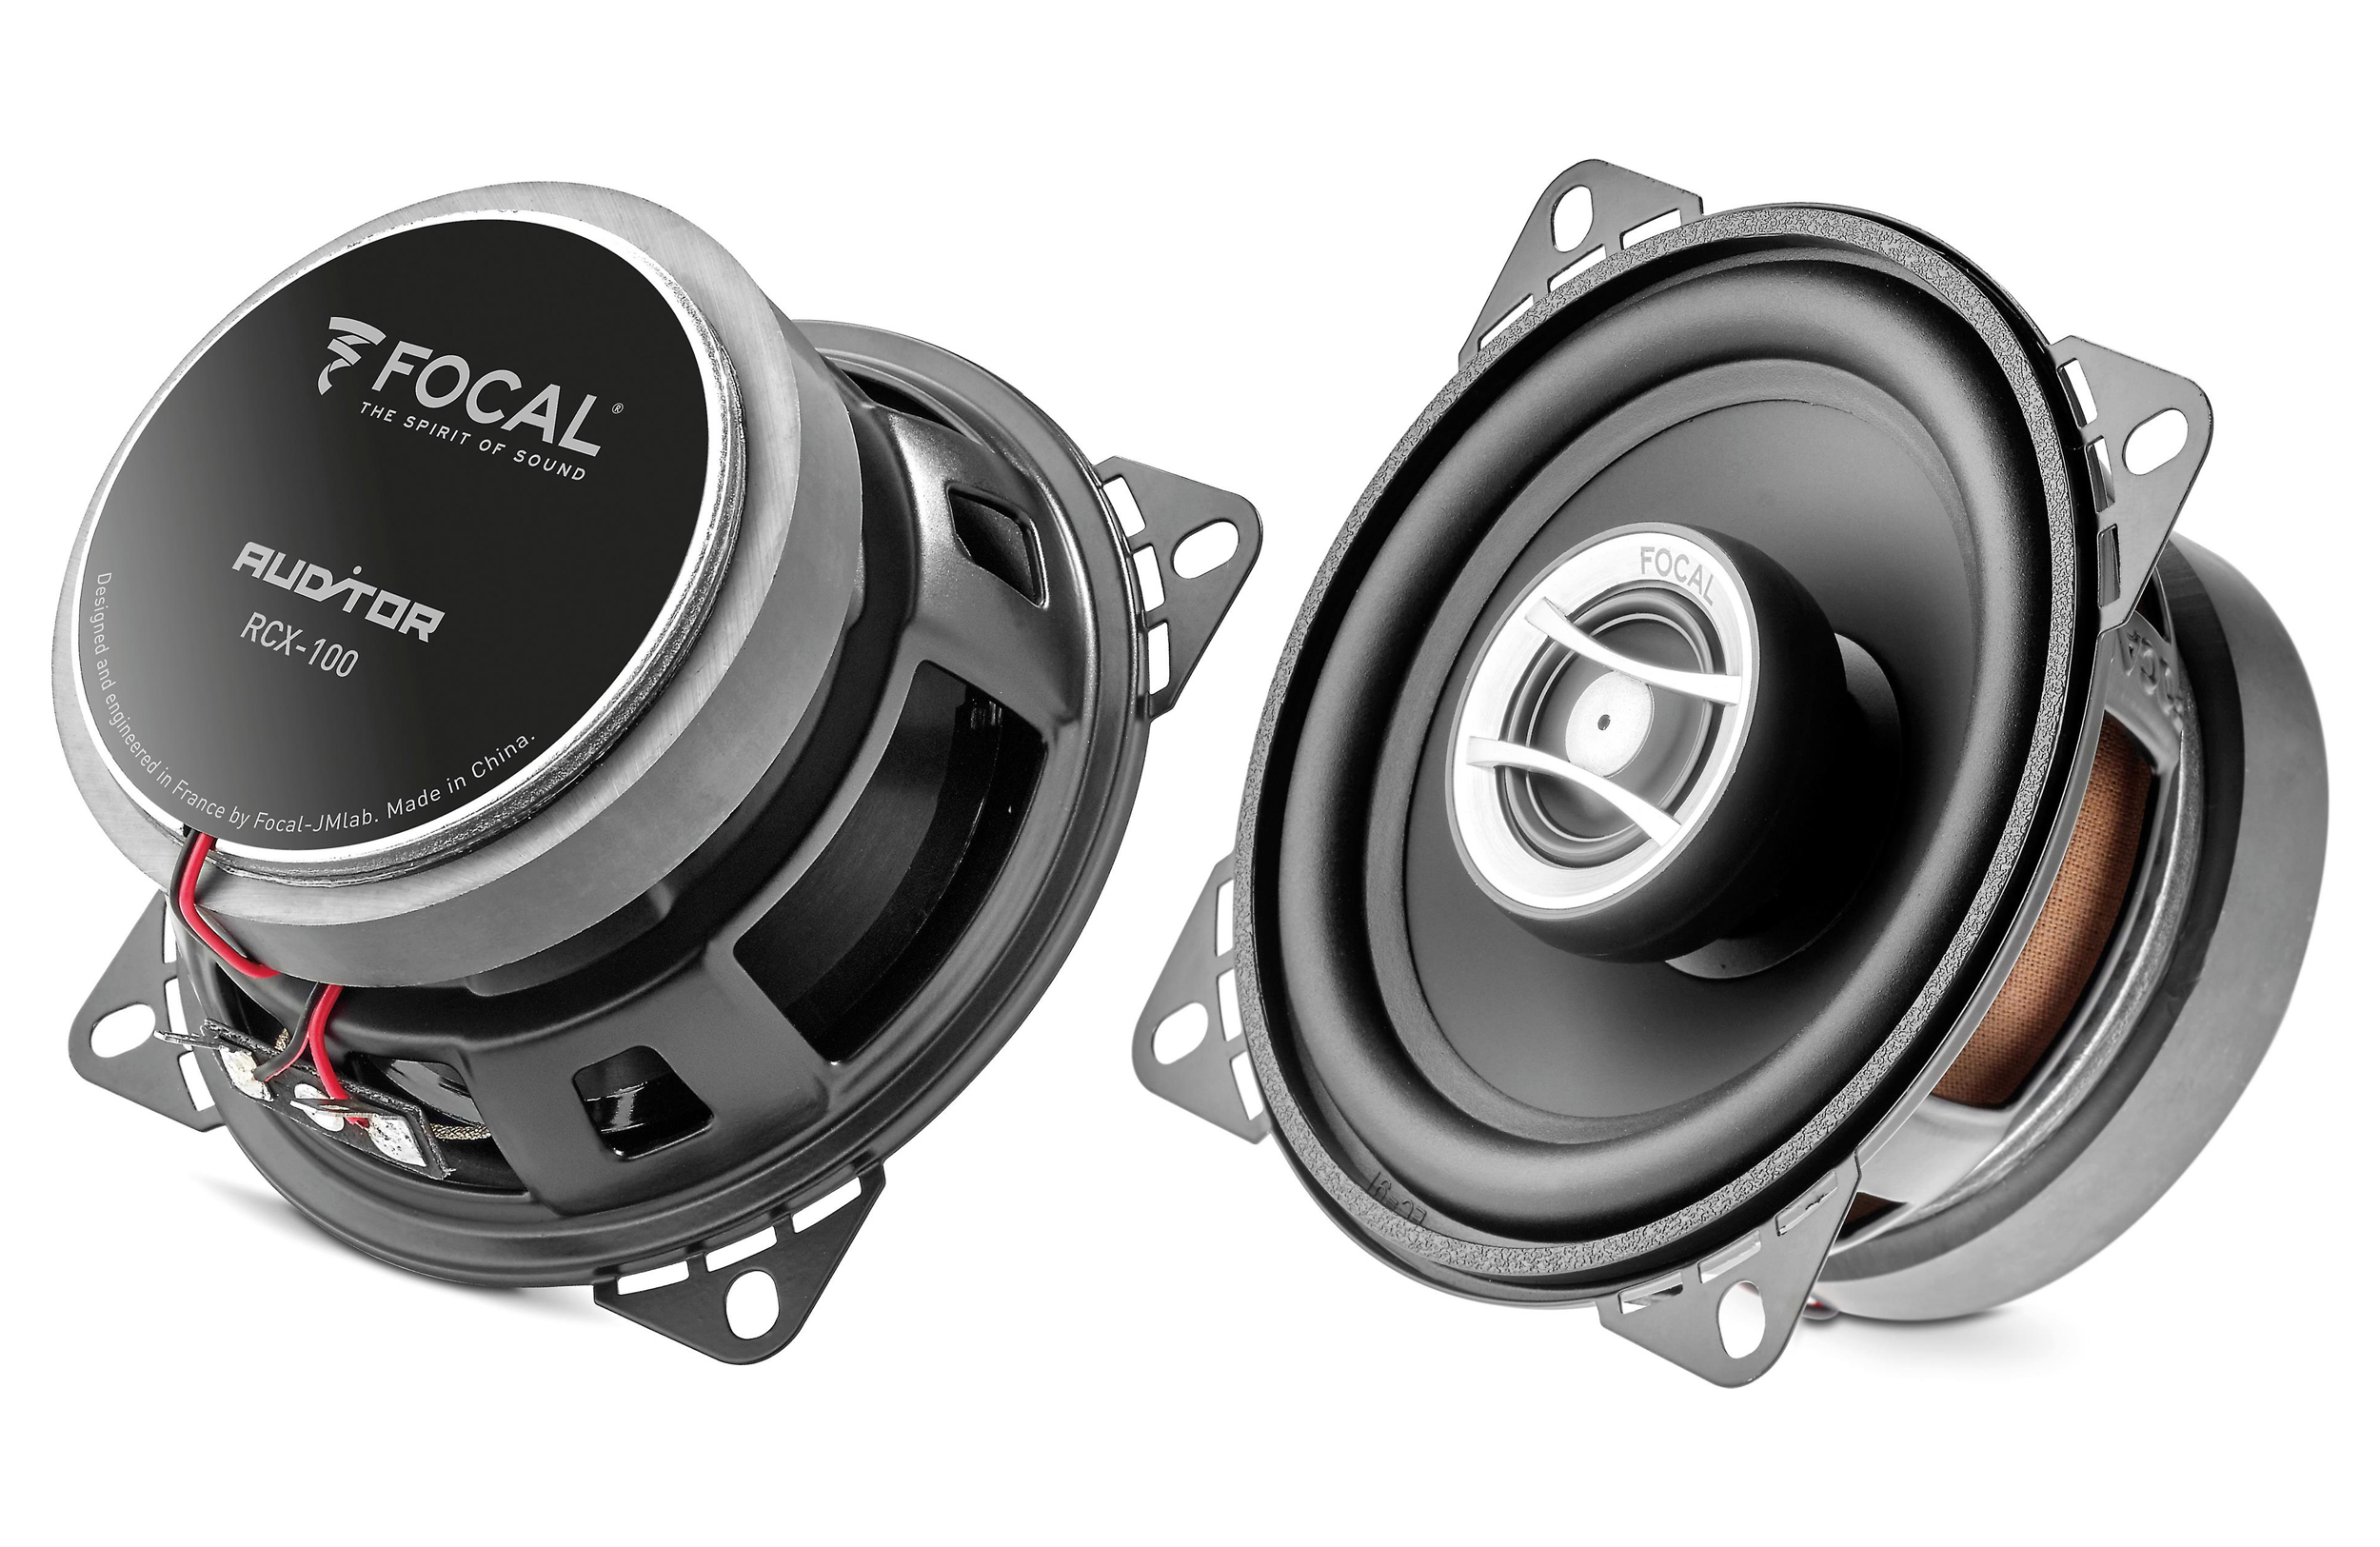 Focal RCX-100 Auditor Series 4 inch 60 Watts Peak Power 2-Way Coaxial Kit